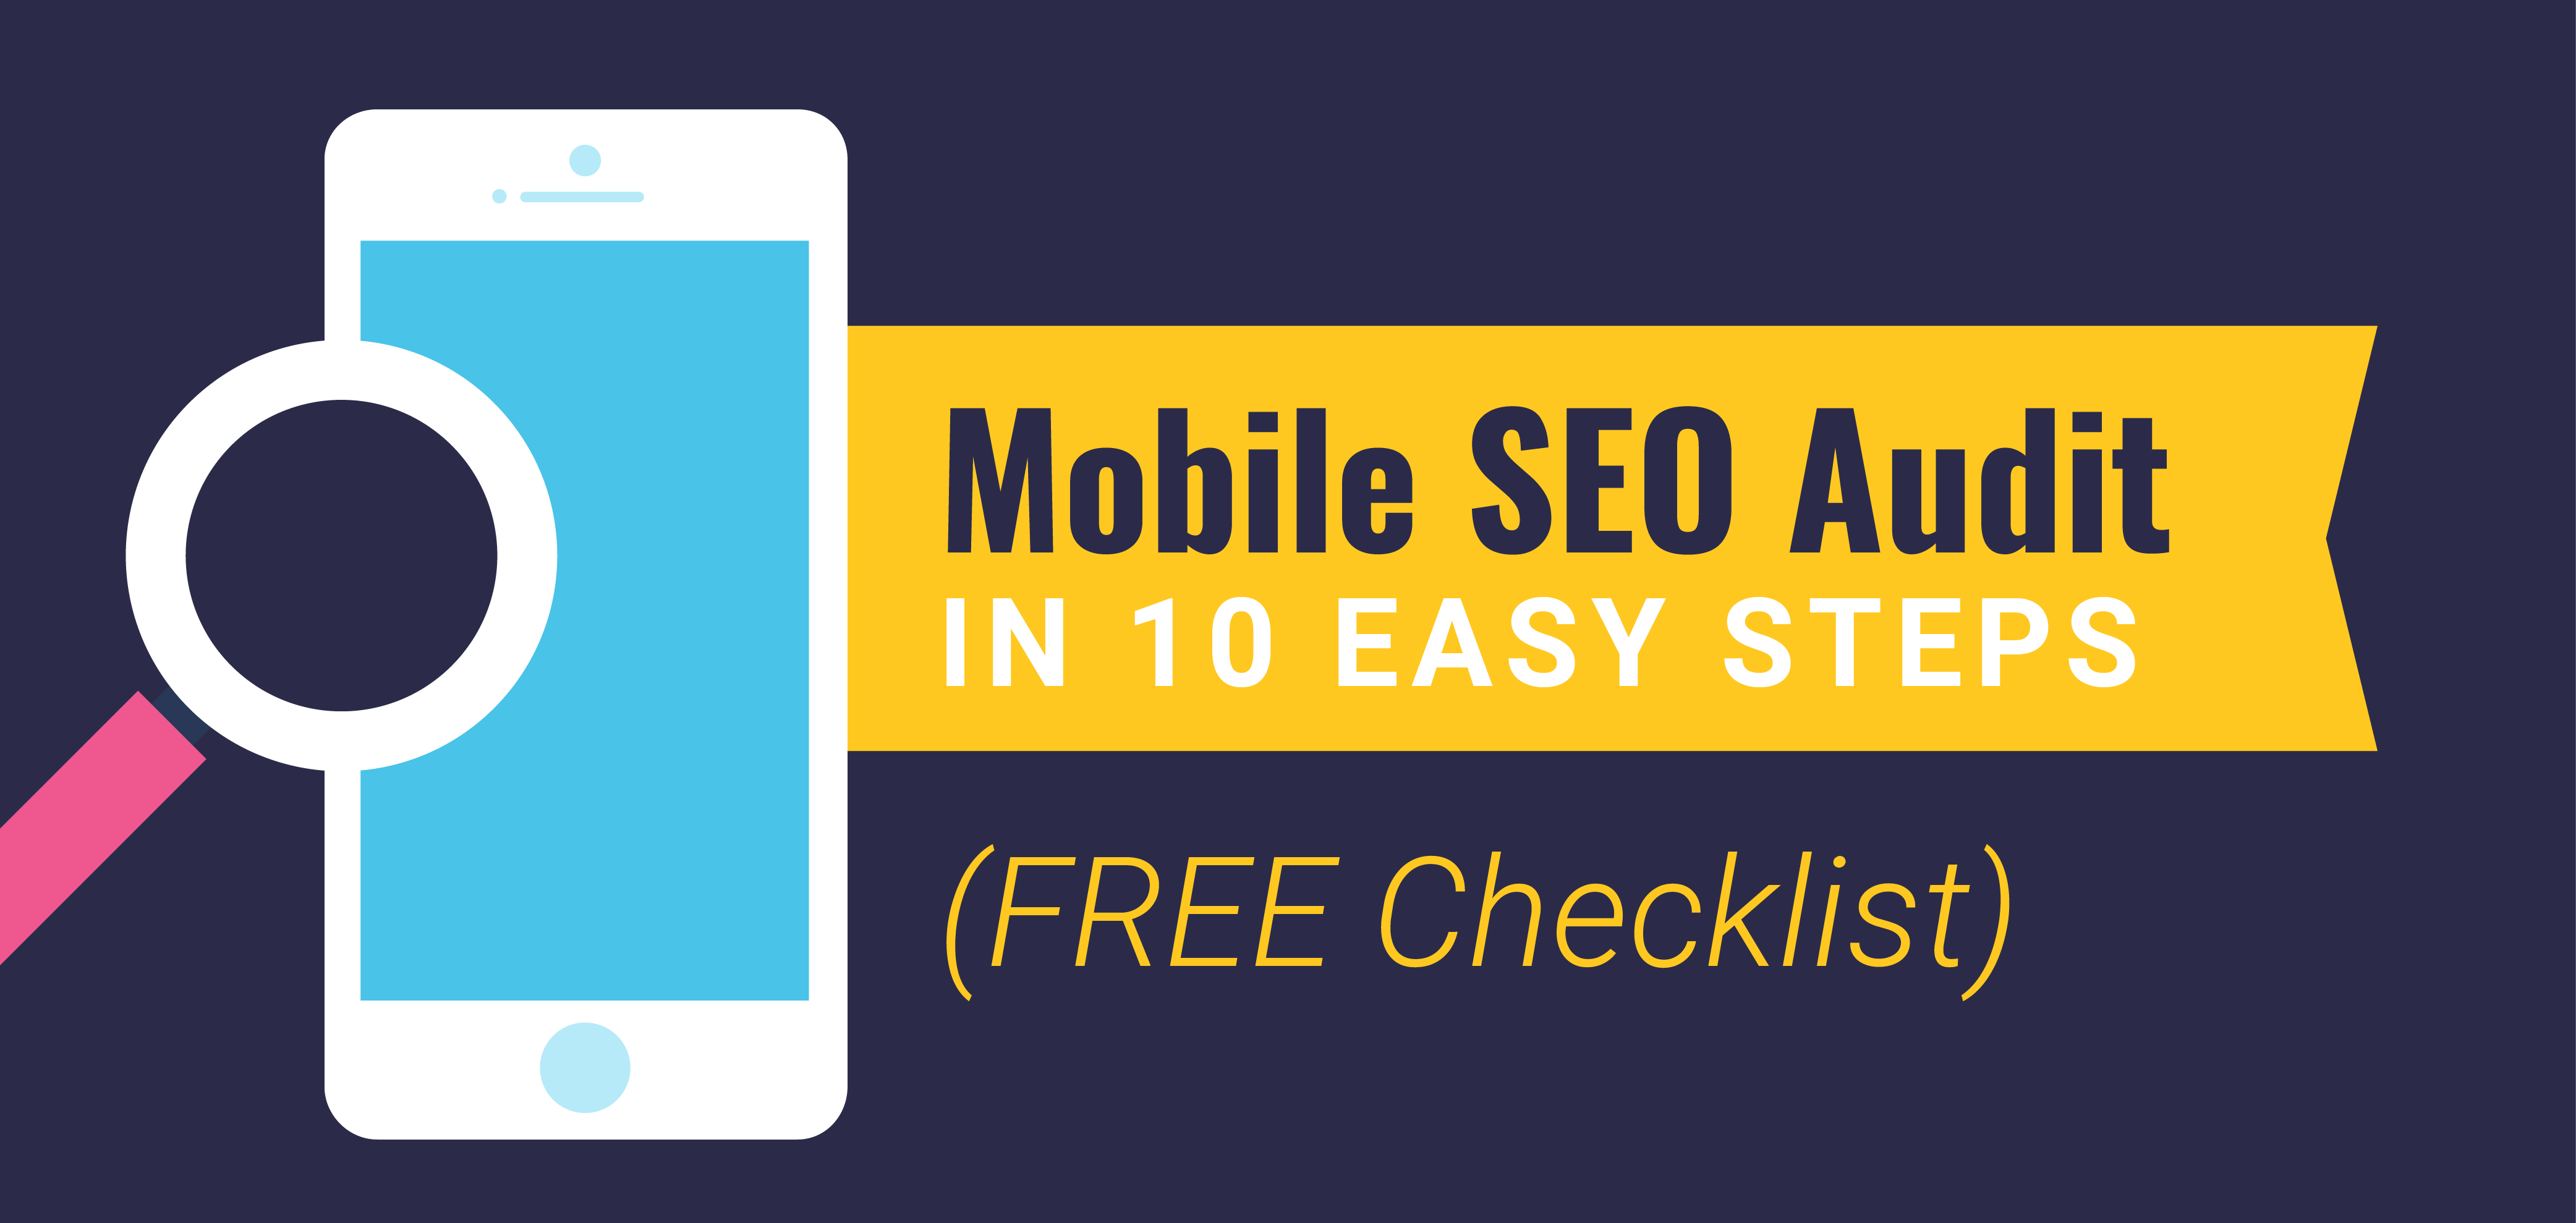 Mobile SEO Audit Banner